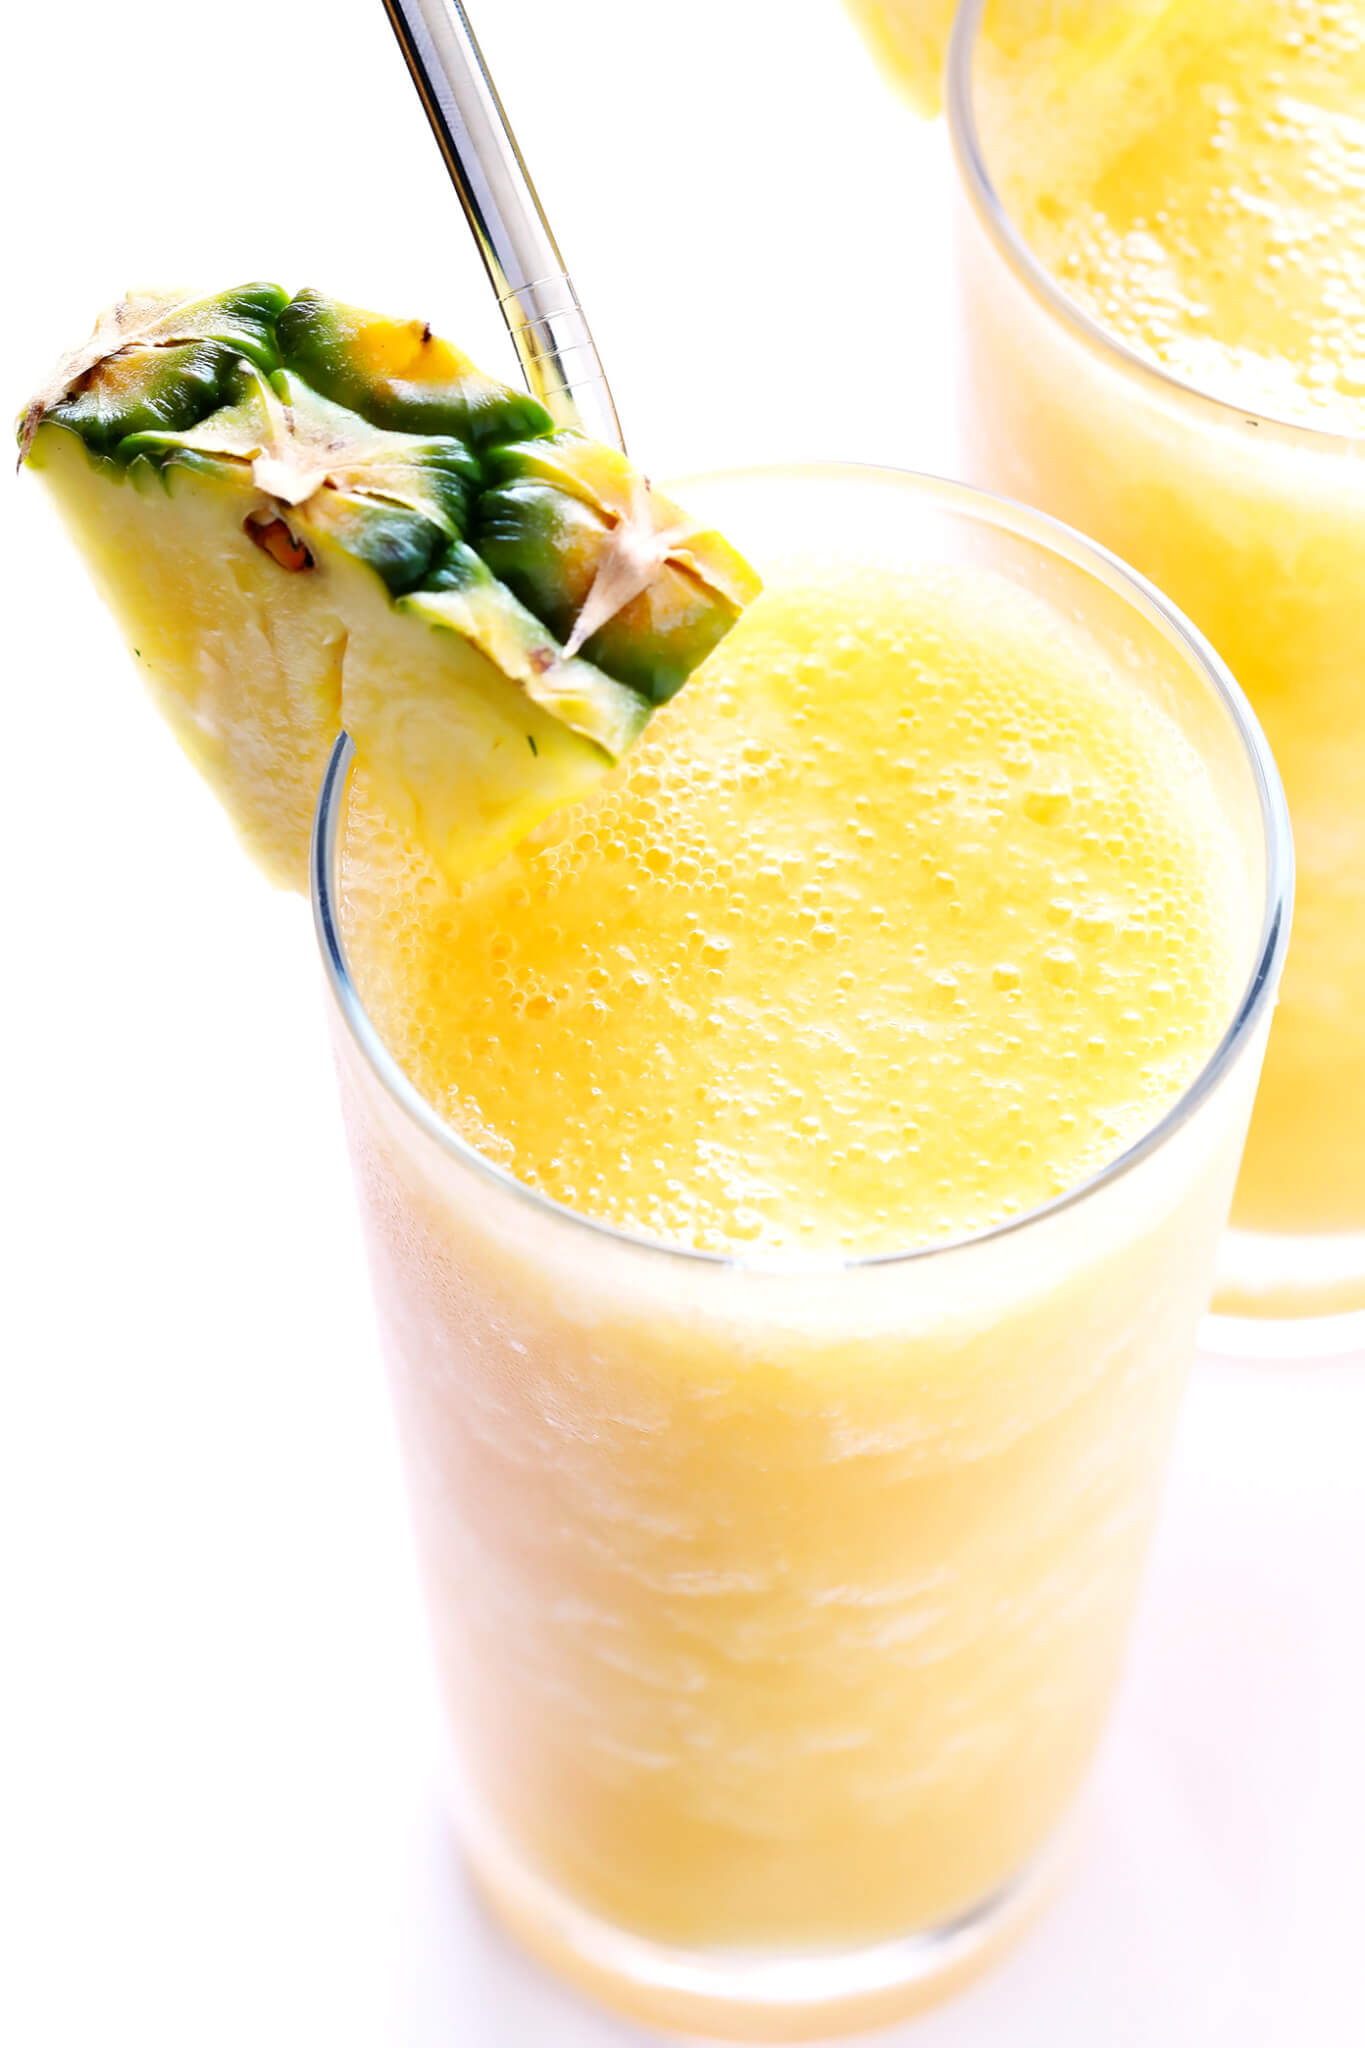 This Tropical Wine Slushies recipe is AMAZING! It's super easy to make with whatever frozen fruit you have on hand and white wine, and it's the perfect blended frozen summer cocktail!   gimmesomeoven.com